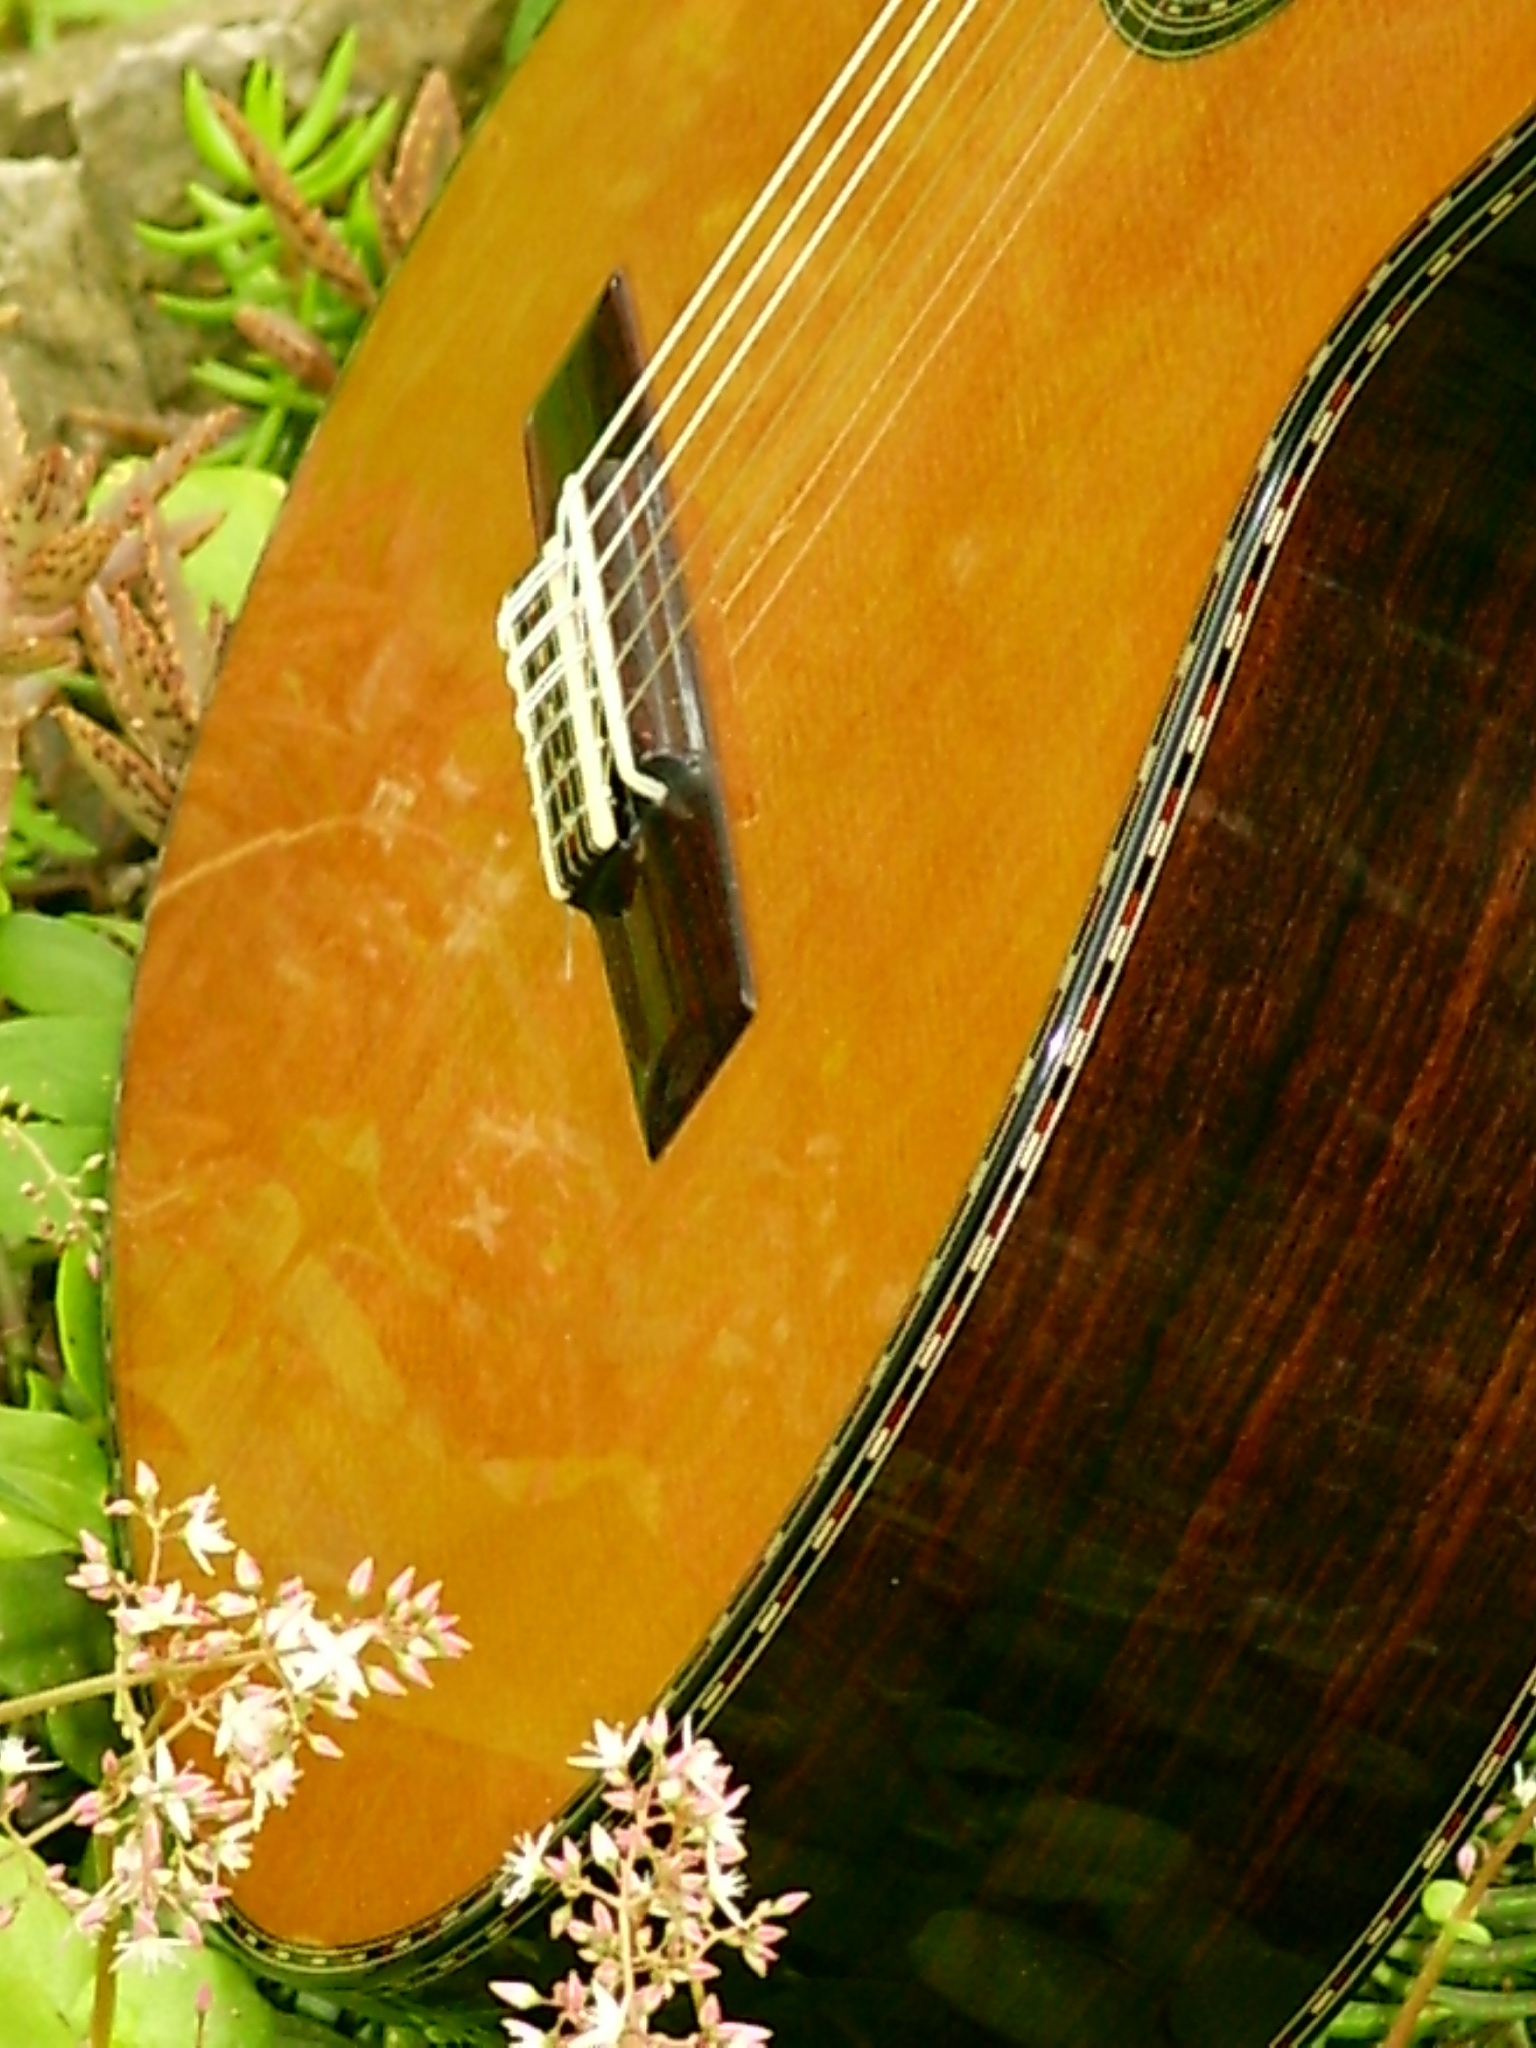 Cedar and rosewood guitar in nature